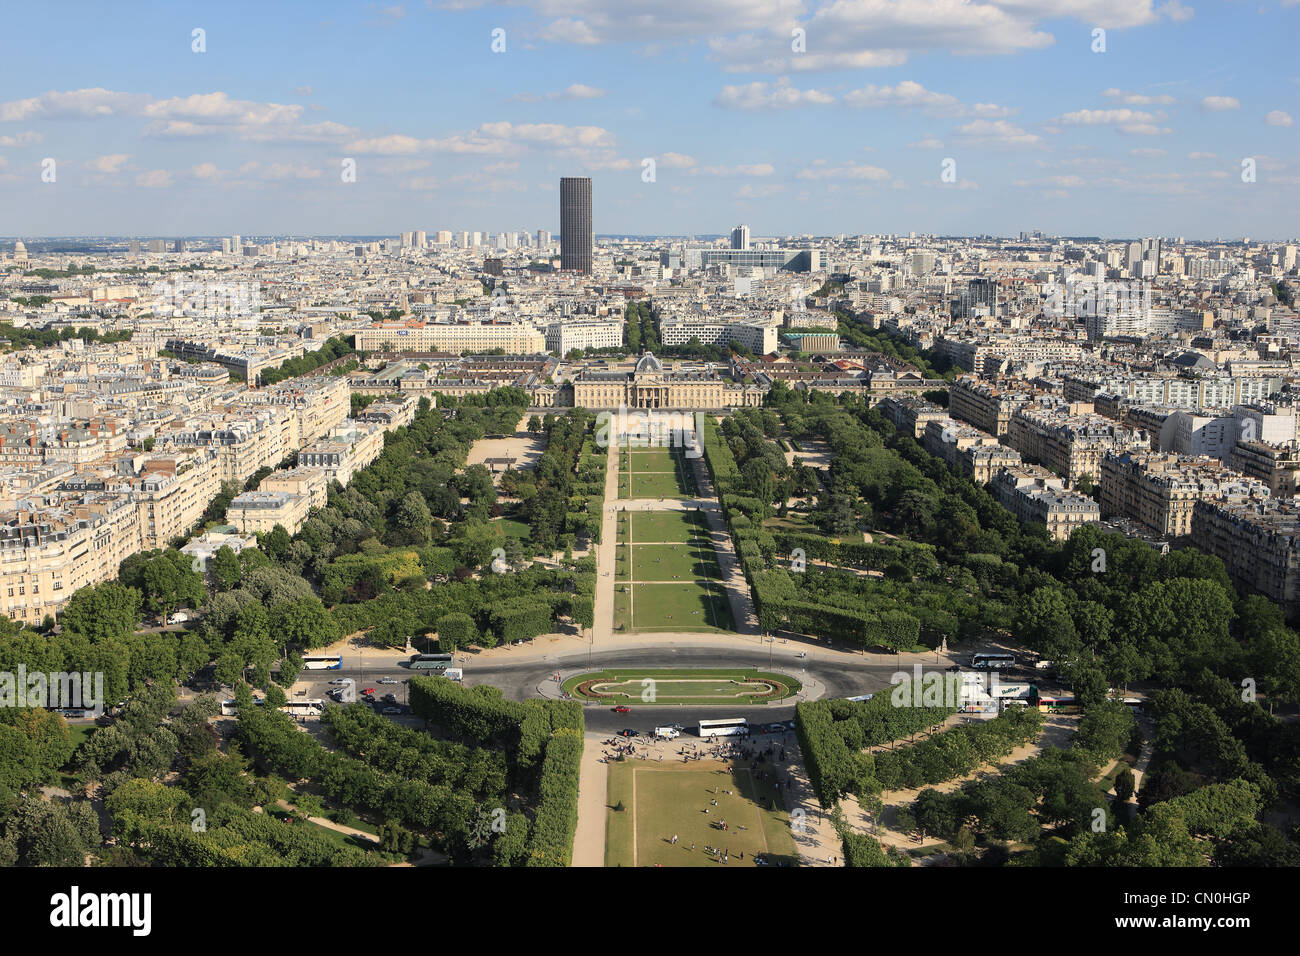 View from the Eiffel Tower over the Parc au Champ de Mars to Ecole Militaire - Stock Image